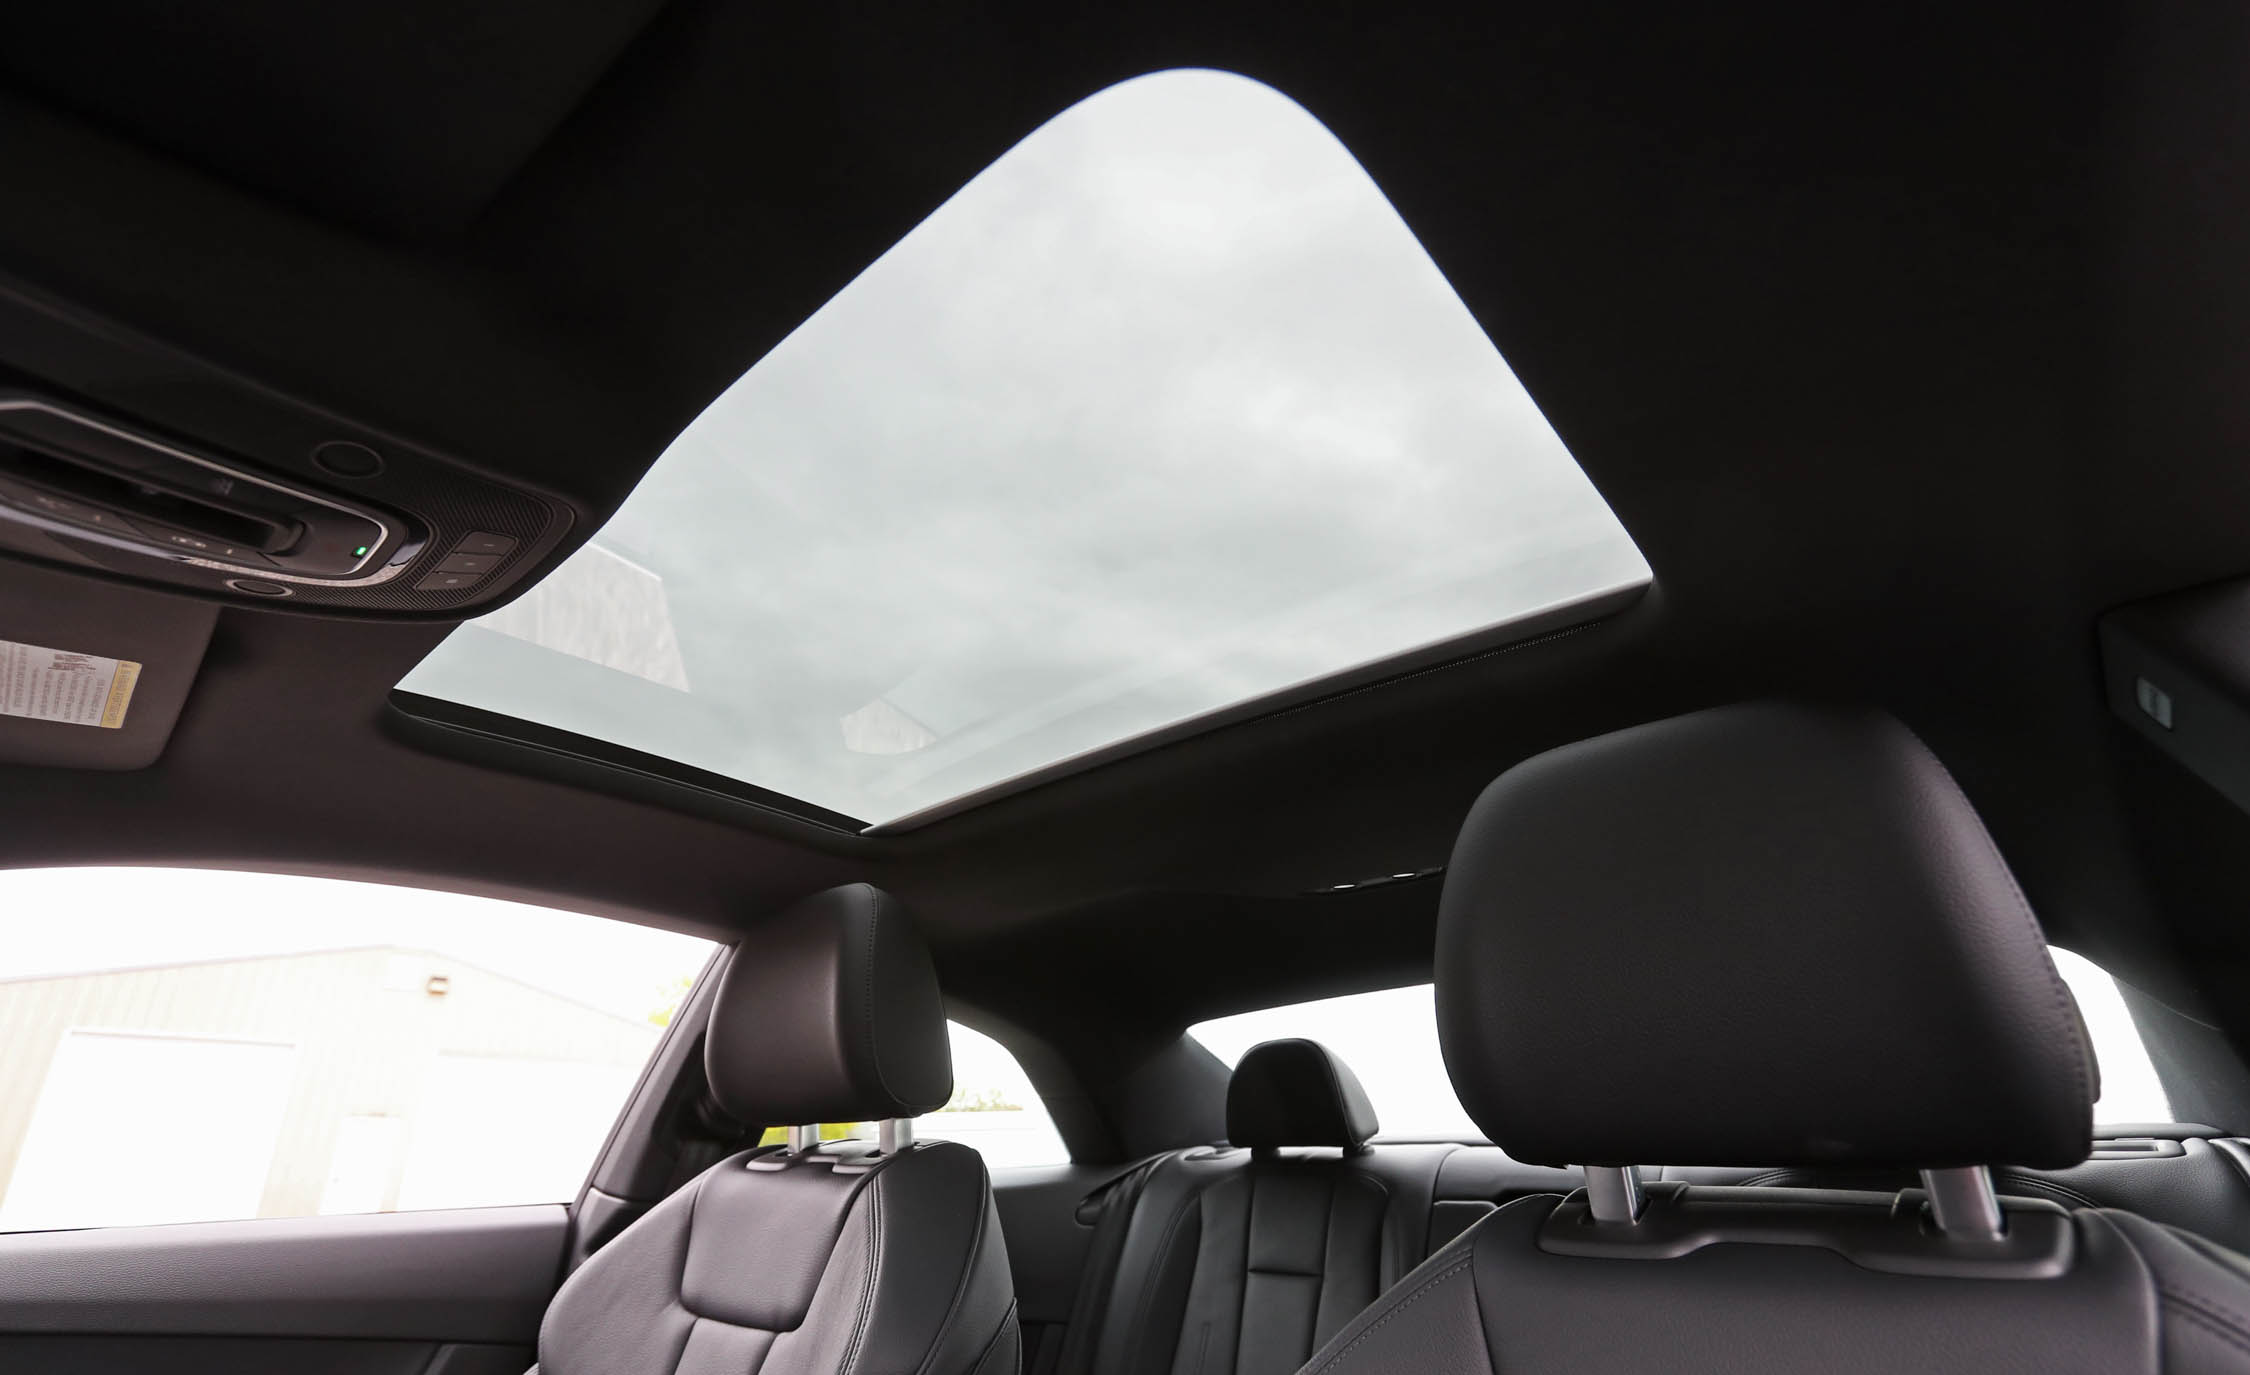 2018 Audi A5 Coupe Interior View Sunroof (Photo 39 of 50)